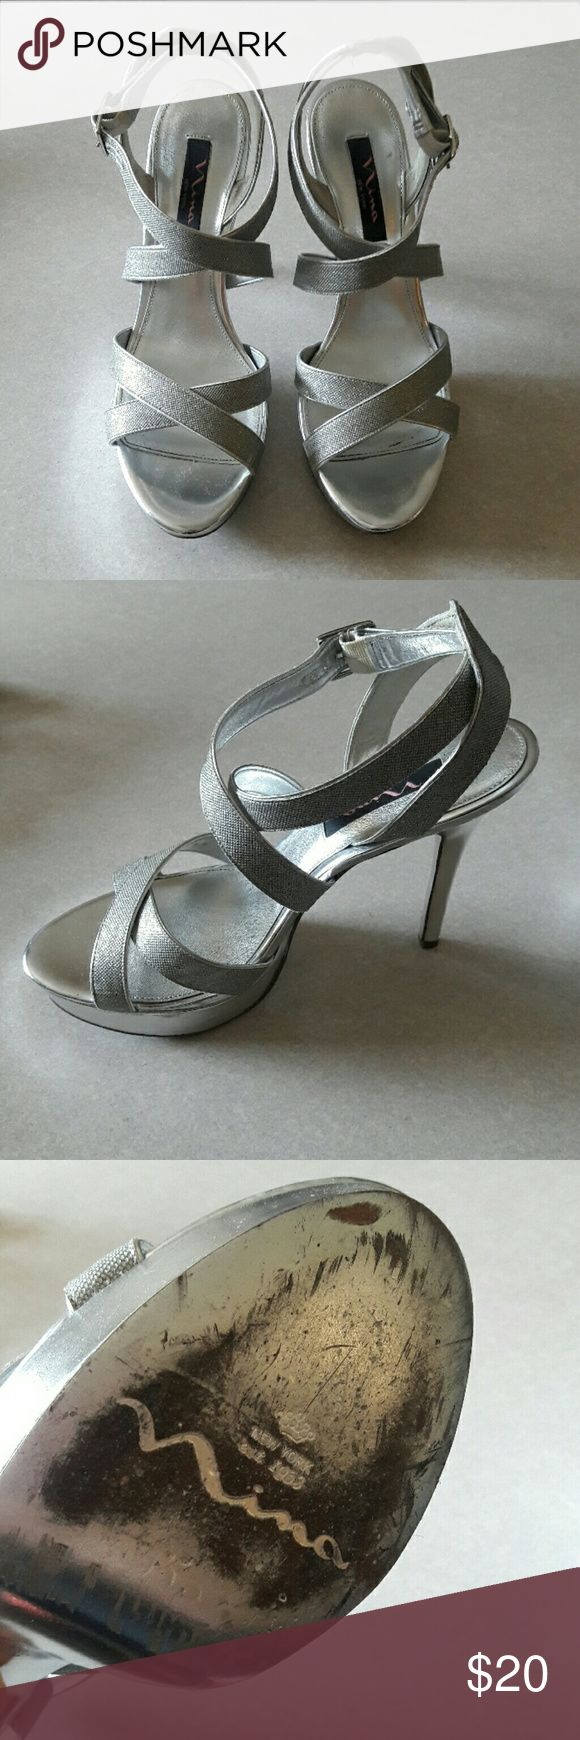 SALE!! Nina New York Silver Strappy Heels Sz 10 Nina New York elegant silver strappy heels in a women's size 10. They have some signs of wear, but nothing that you would notice while in use. Nina Shoes Heels